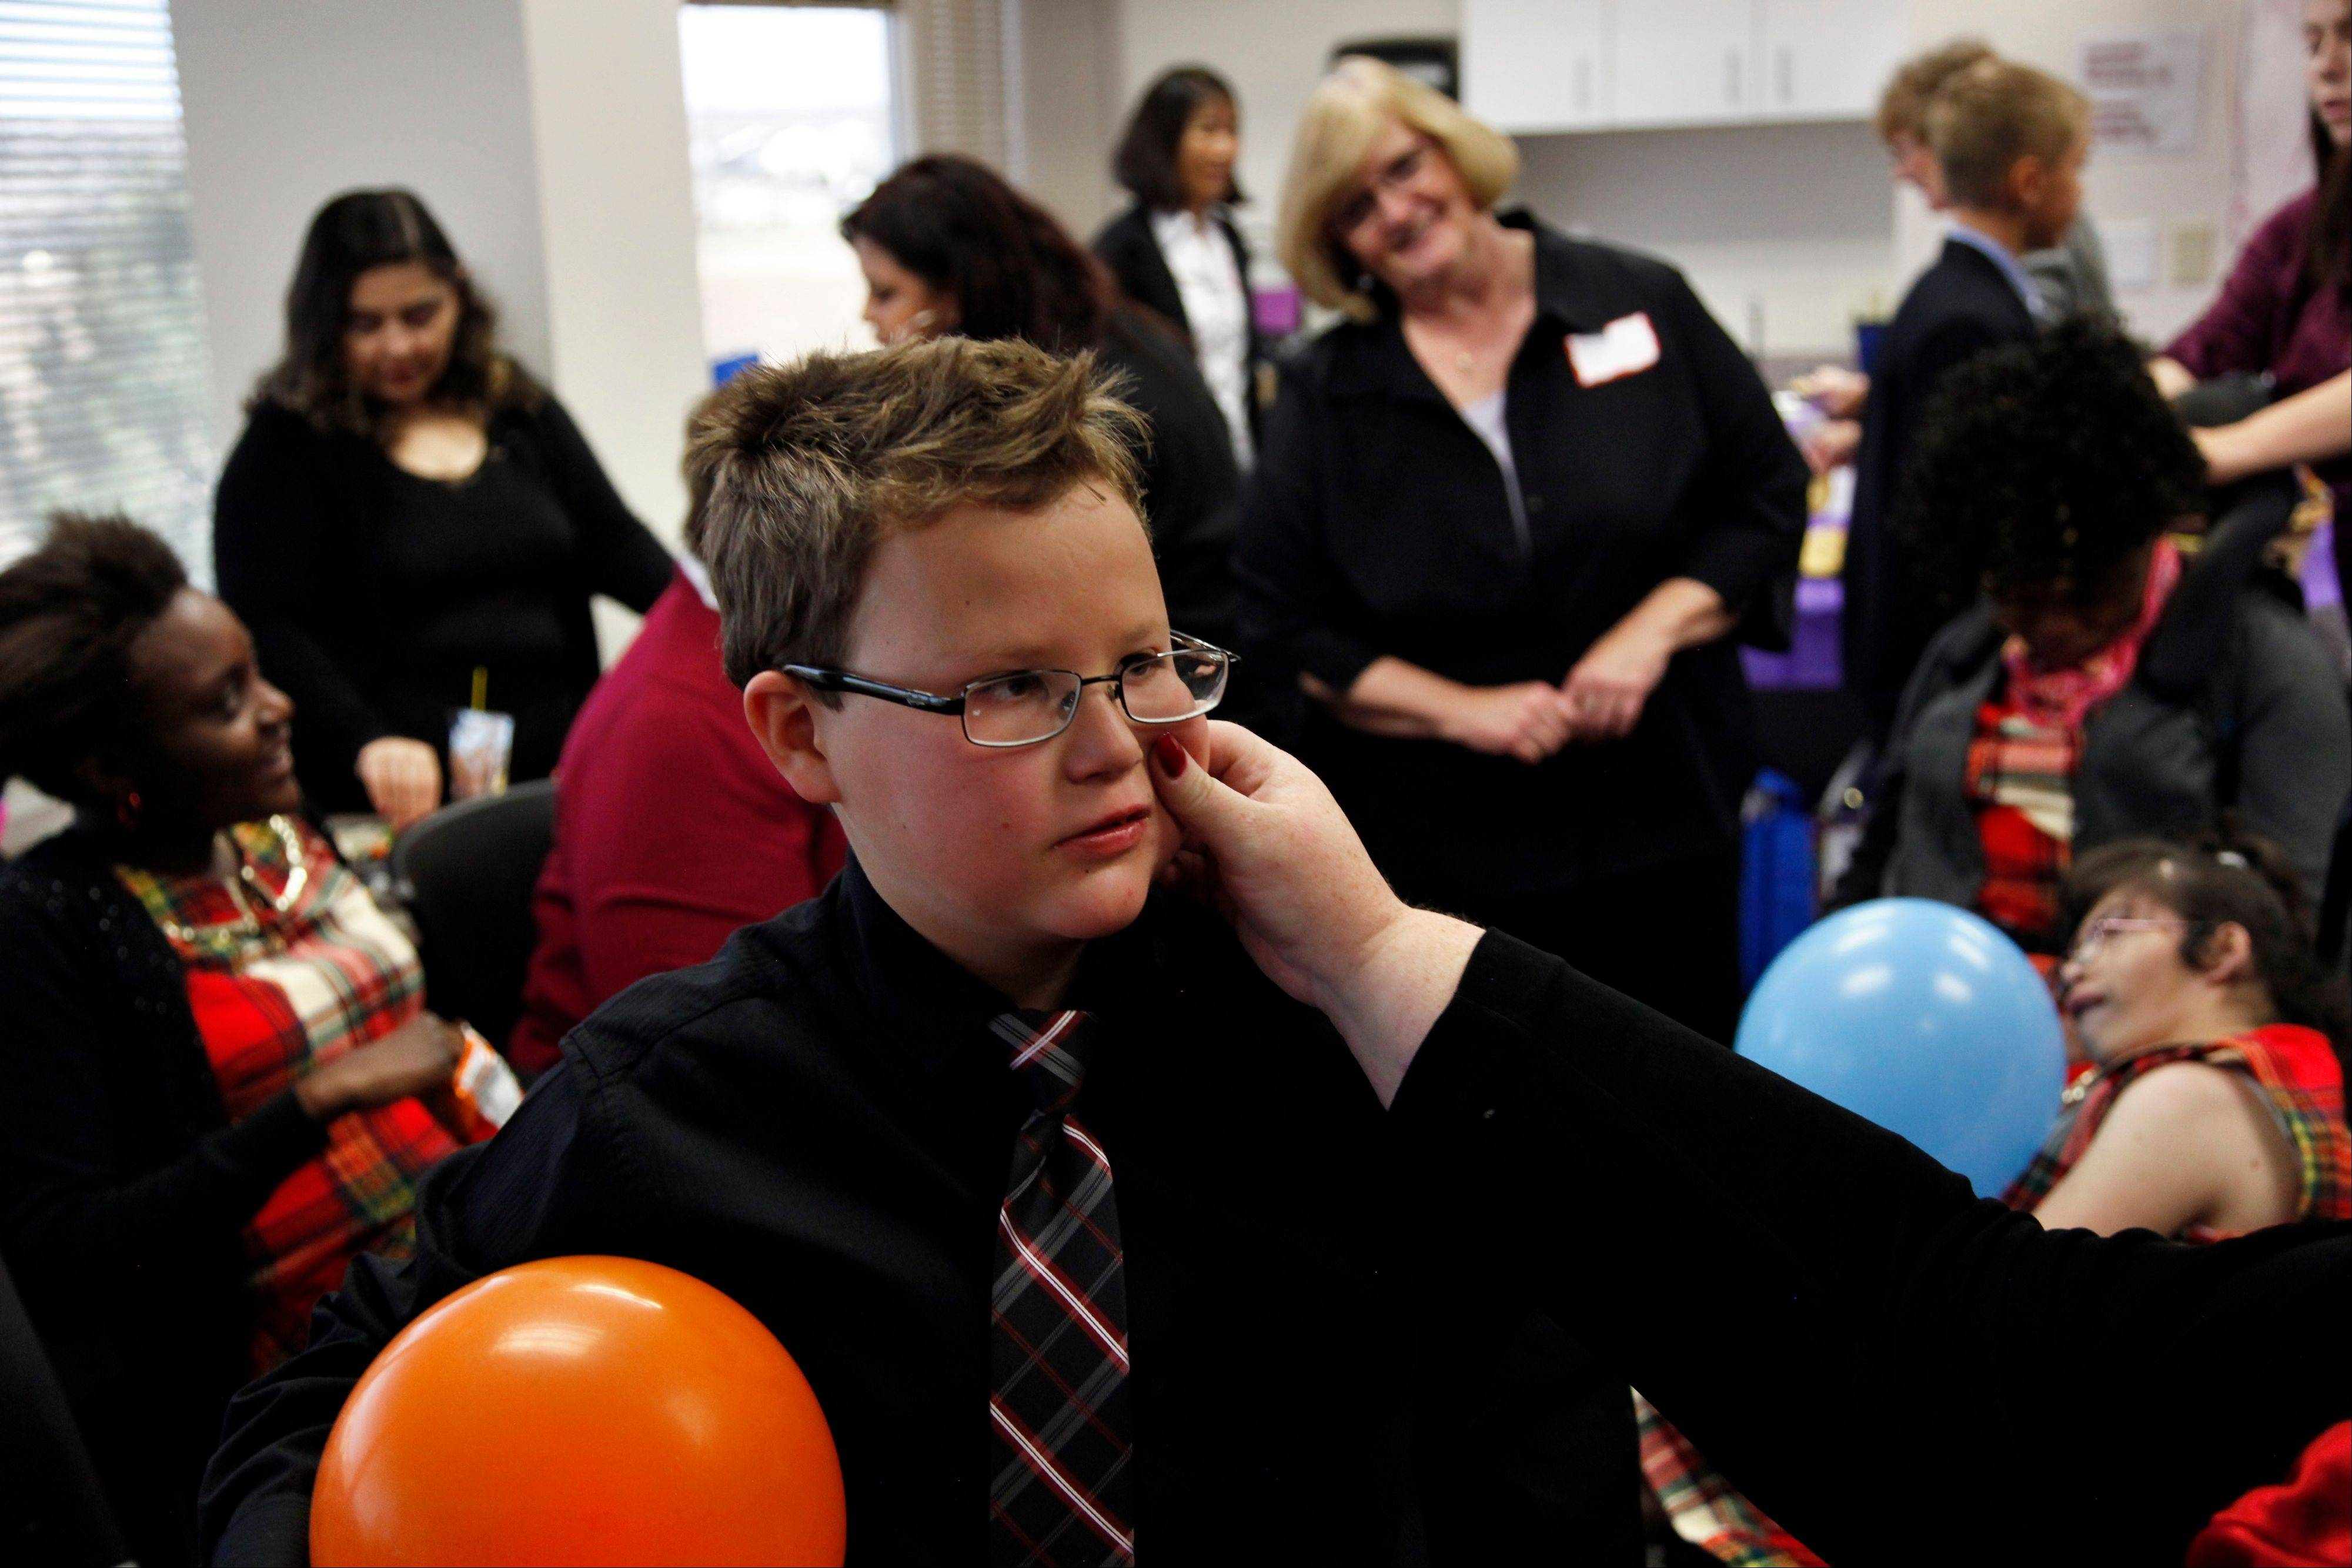 Anthony, 11, the intellectually-disabled son of Carrie Ann Lucas, gets a pinch on the cheek from his mother during a party held for newly-adopted children and their families on National Adoption Day at the Arapahoe County Justice Center in Centennial, Colo., on the day Anthony officially became her son. Carrie Ann Lucas, herself disabled, is the mother of four disabled adopted children.